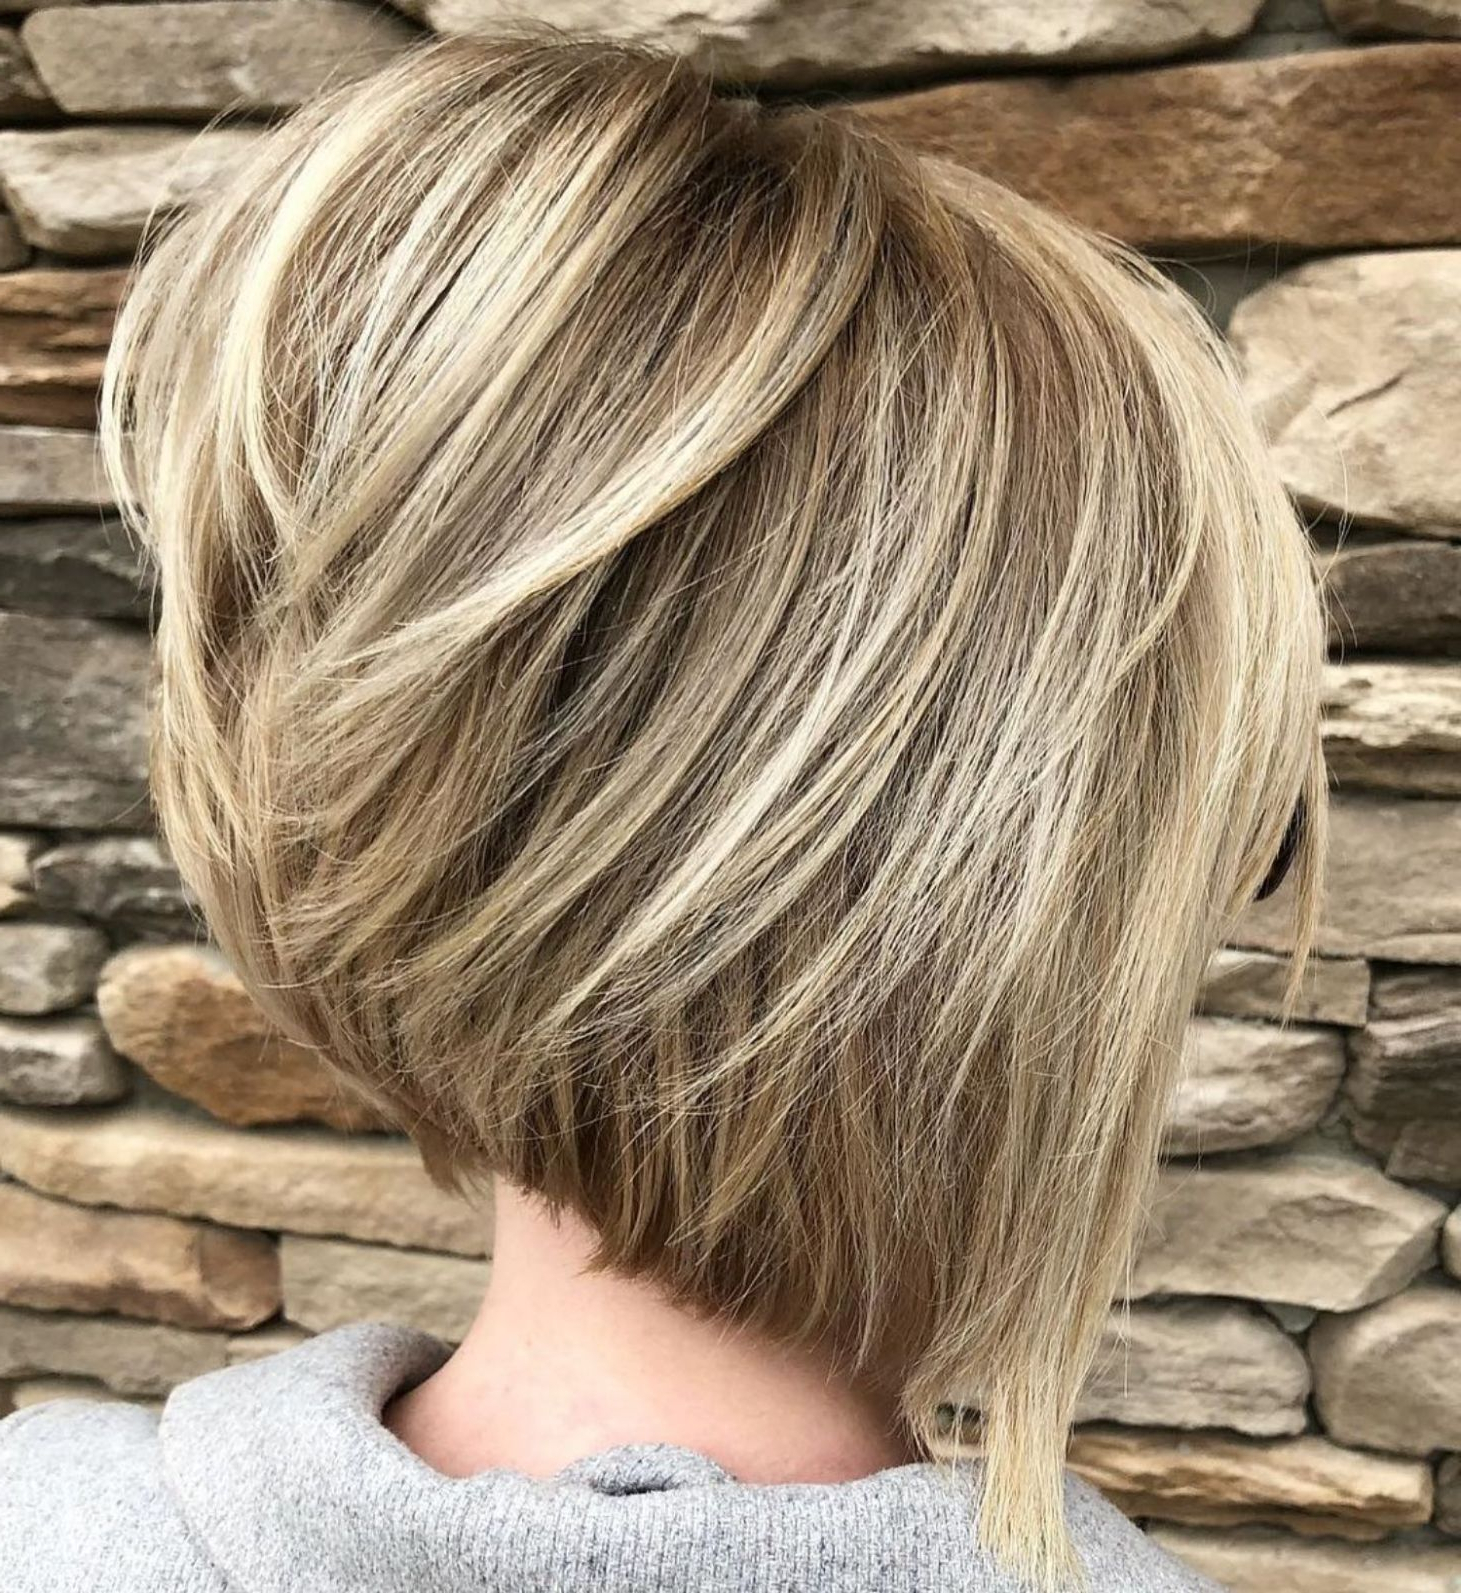 60 Layered Bob Styles: Modern Haircuts With Layers For Any Occasion Pertaining To Blonde Balayage Bob Hairstyles With Angled Layers (View 15 of 20)